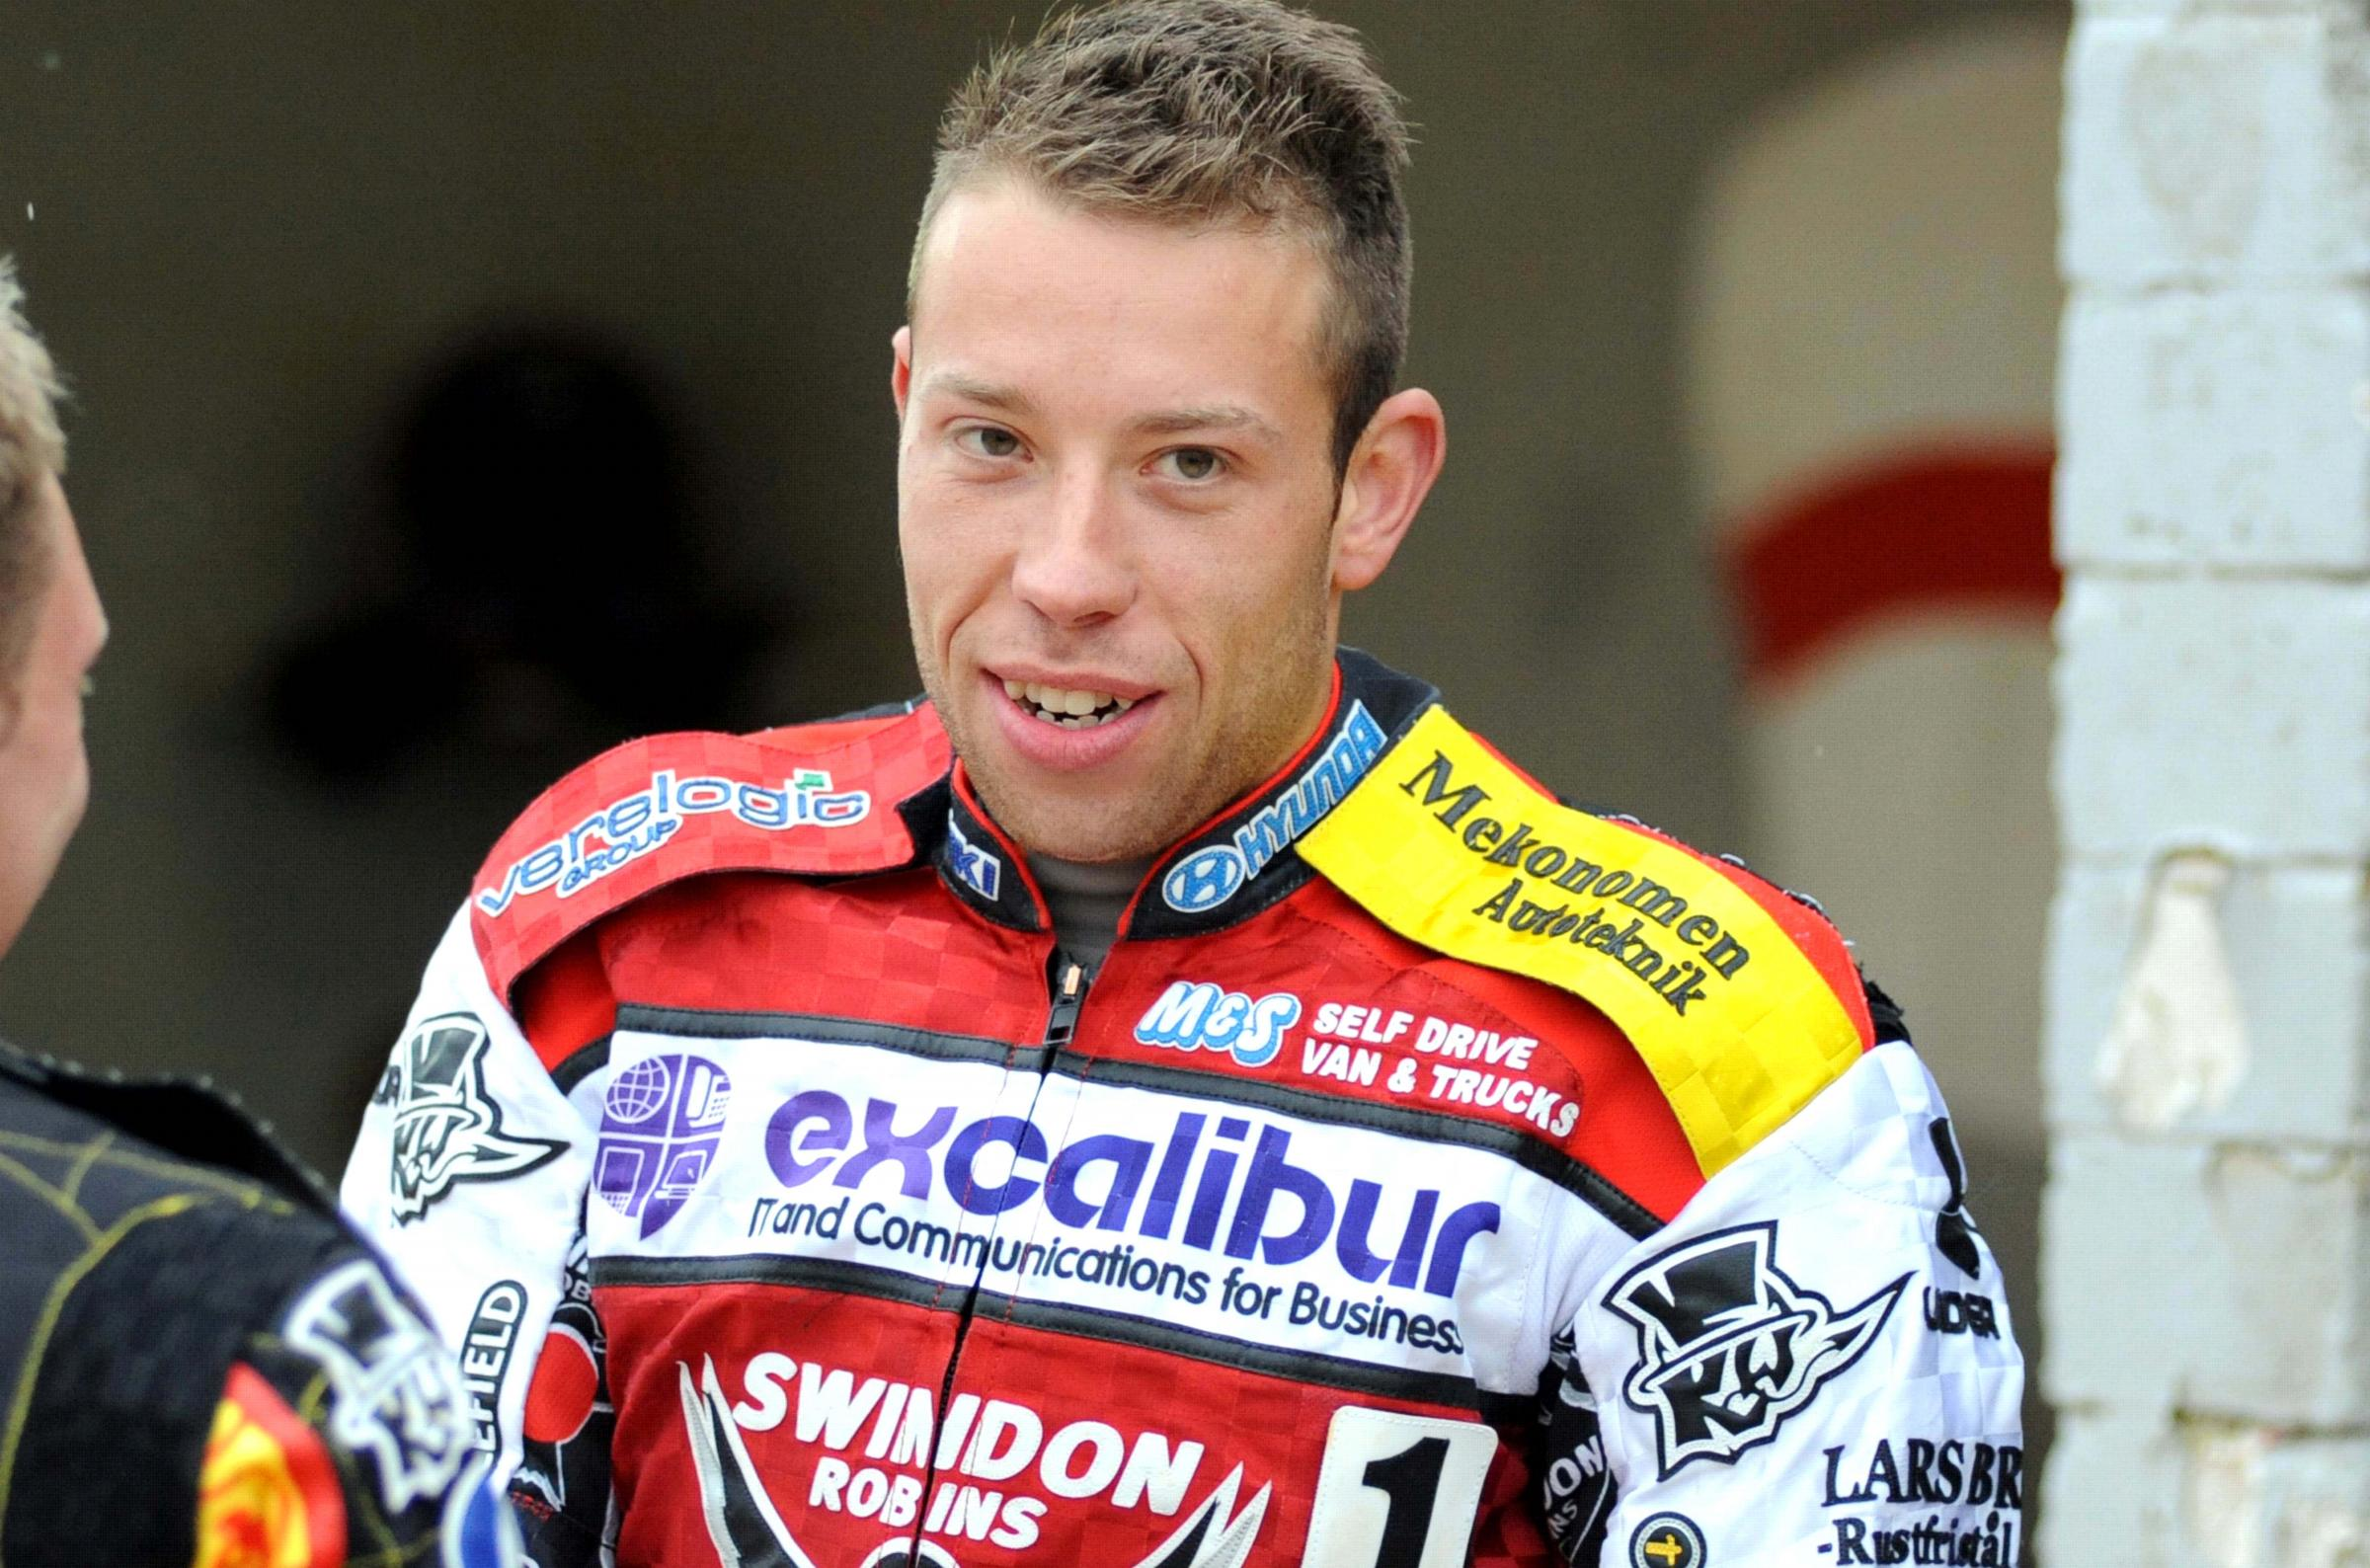 Swindon Robins rider Peter Kildemand